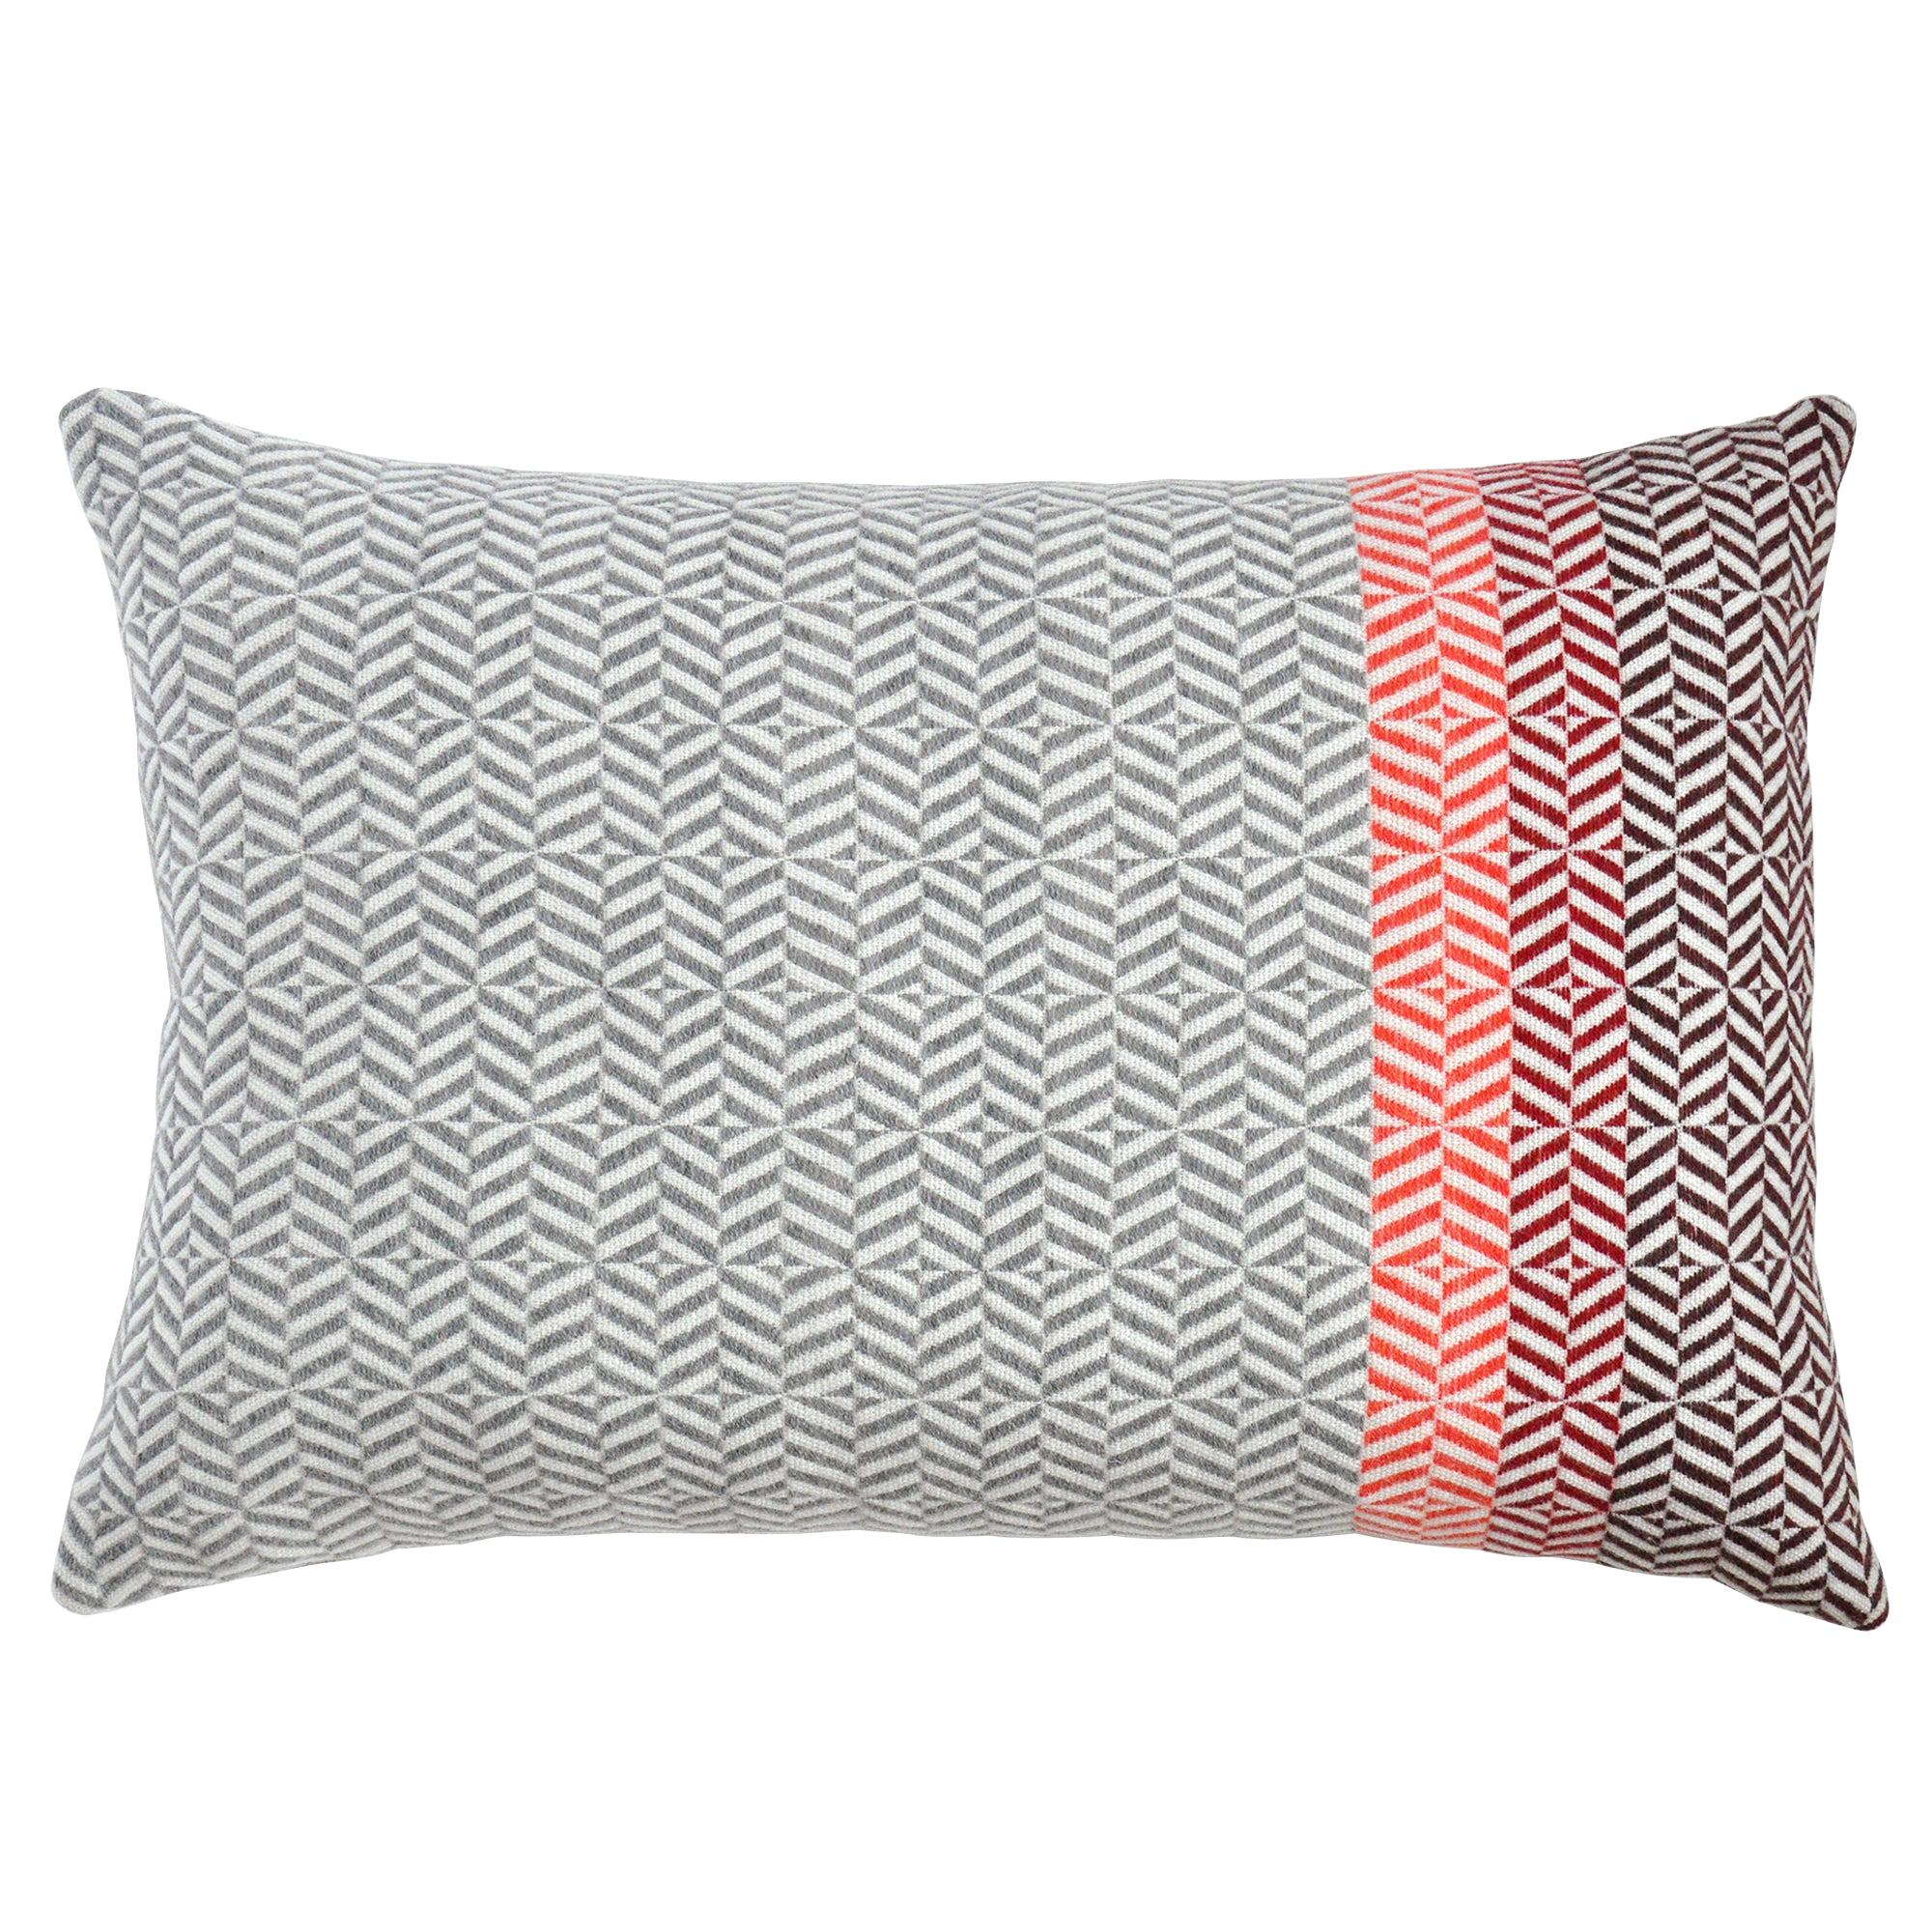 Handwoven 'Uccle' Geometric Large Merino Wool Cushion Pillow, Papaya/Grey